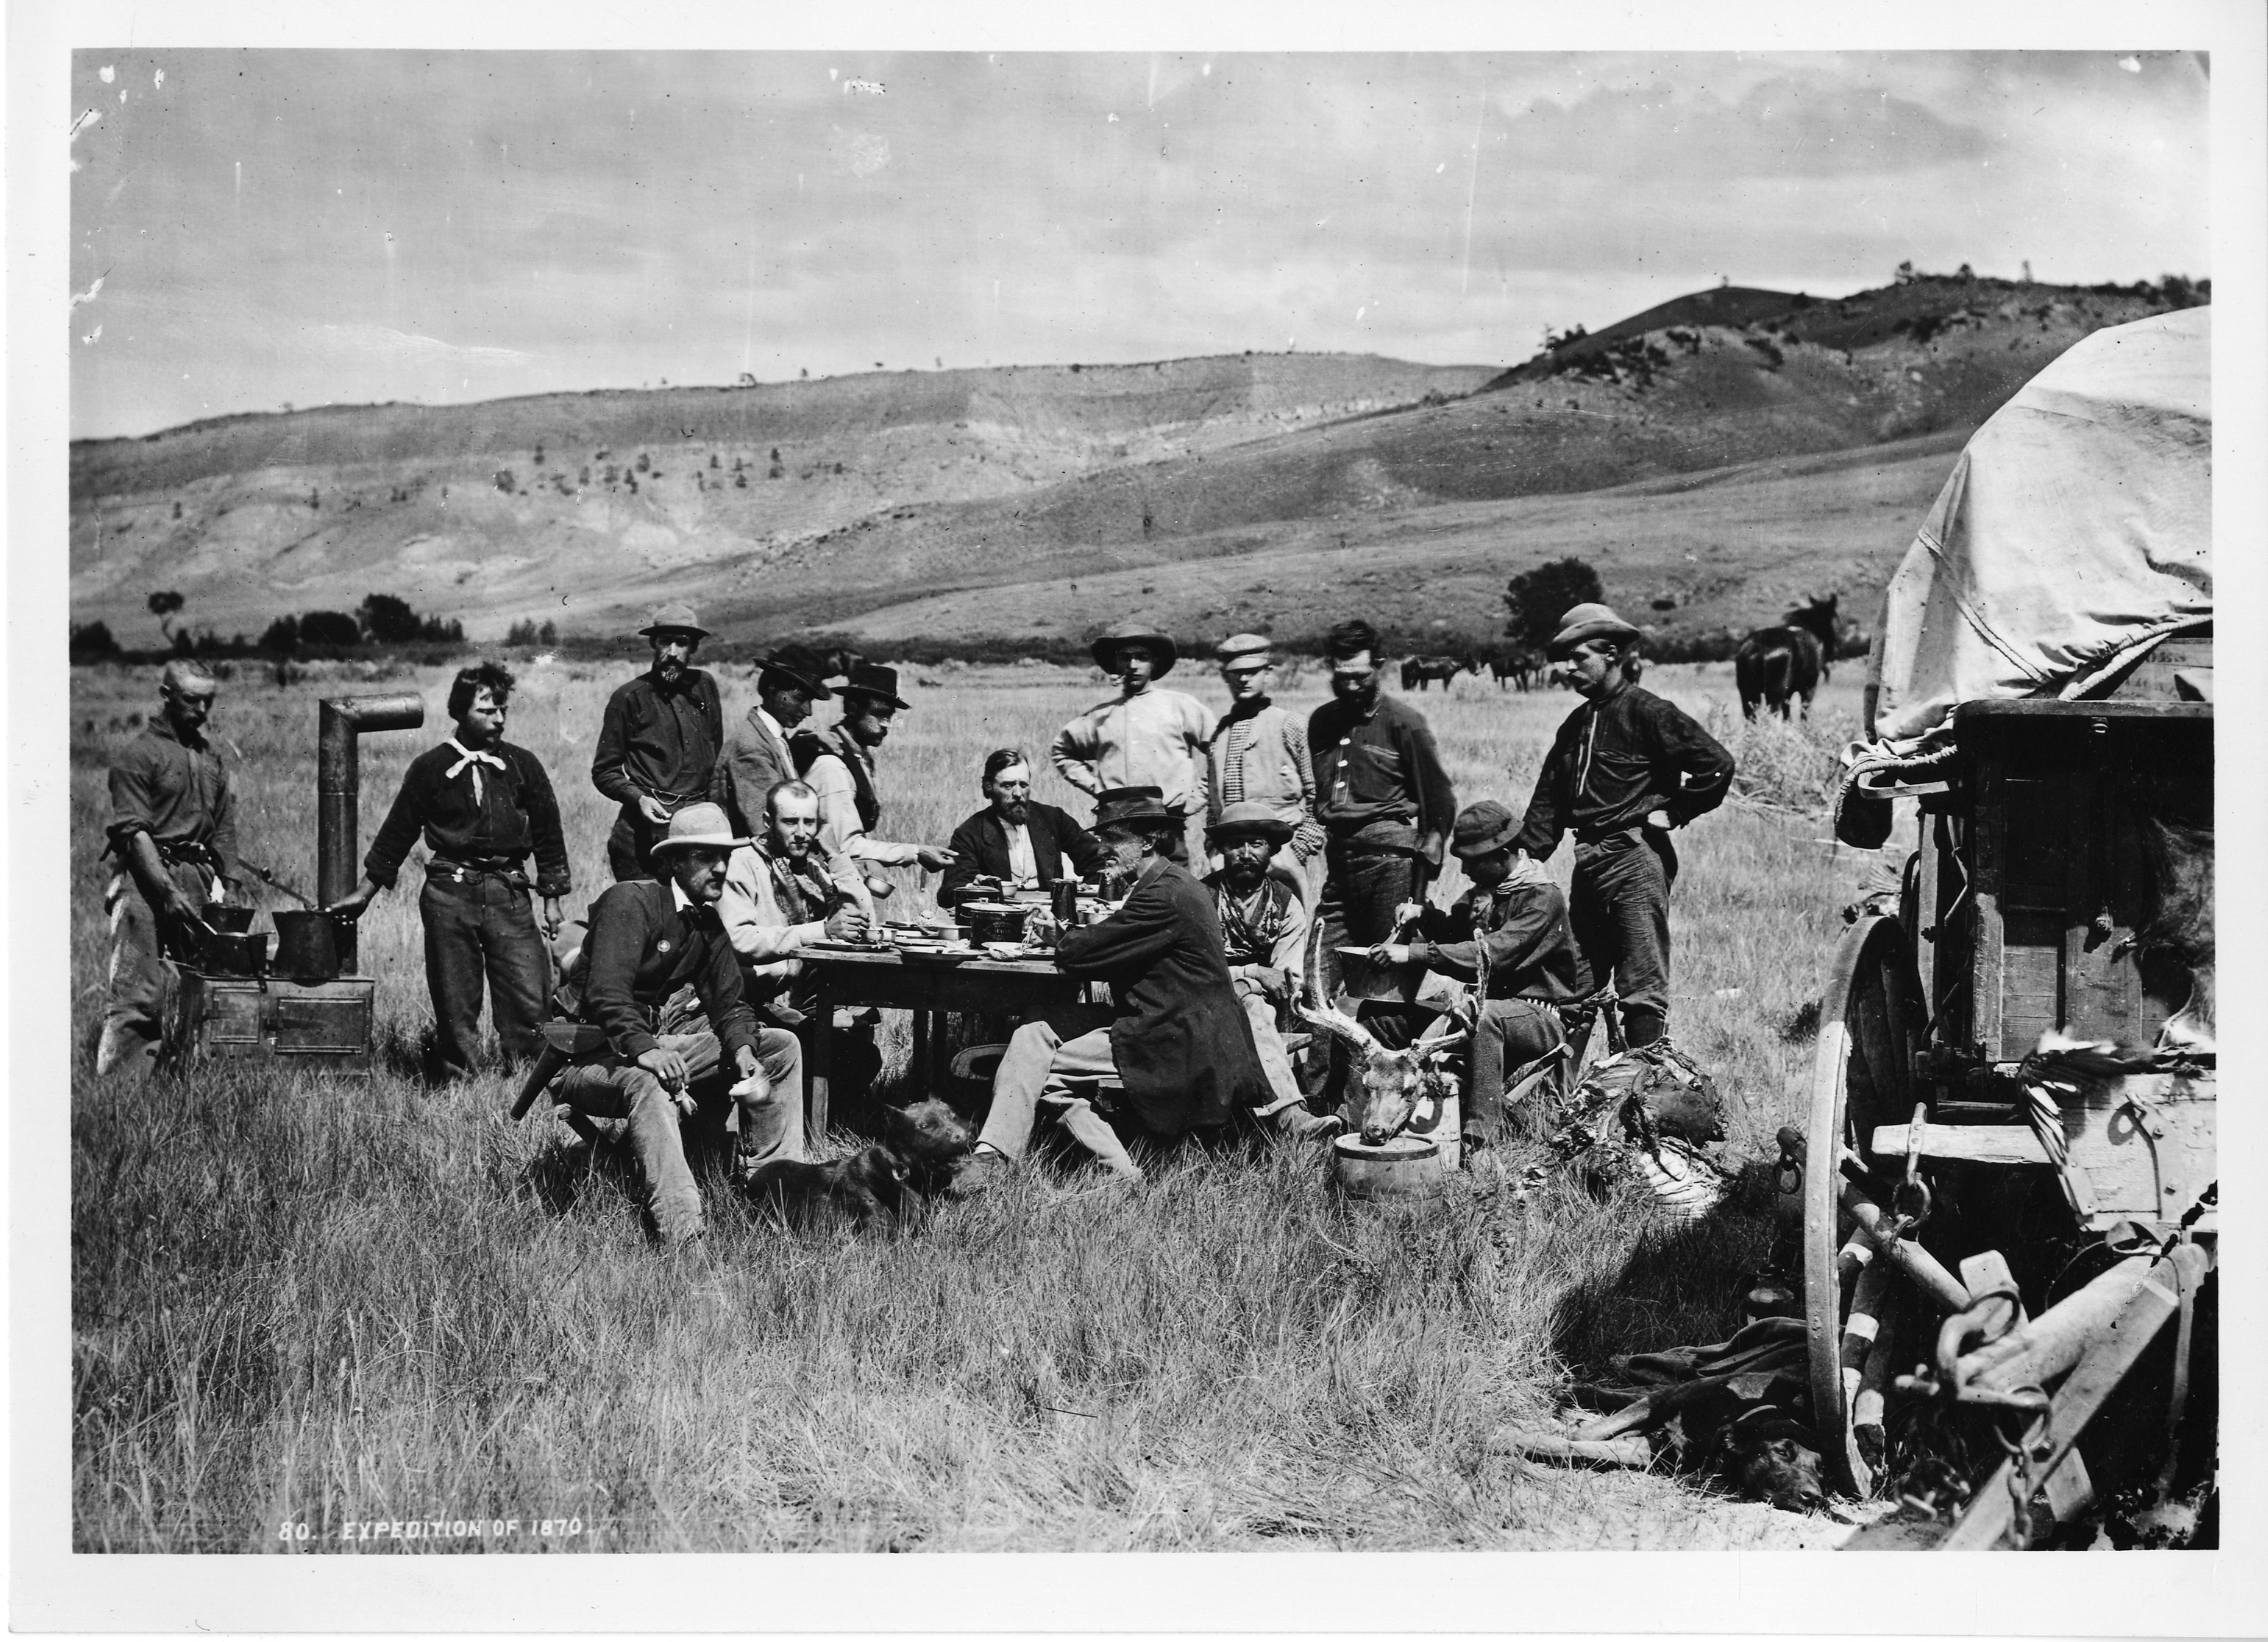 Men gather around a table at a campsite.